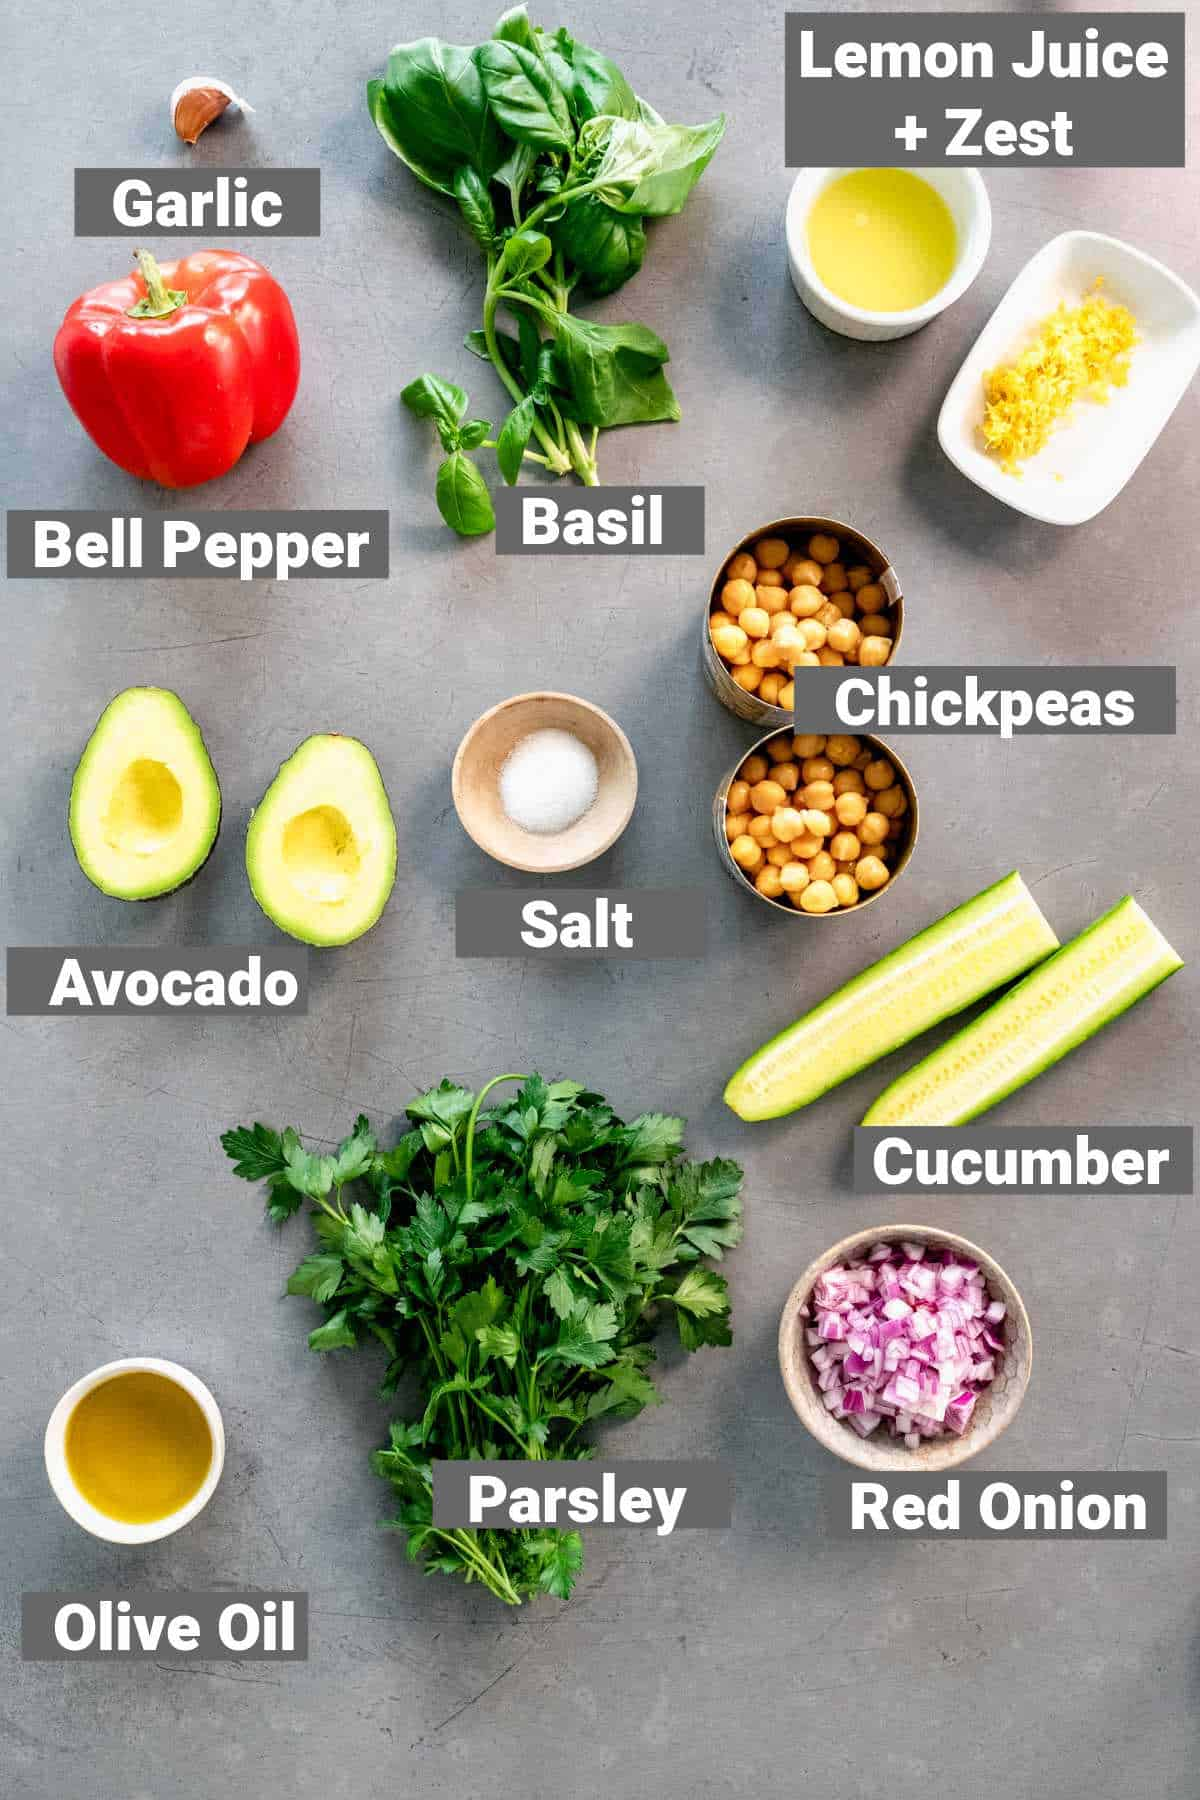 ingredients for the salad with labels